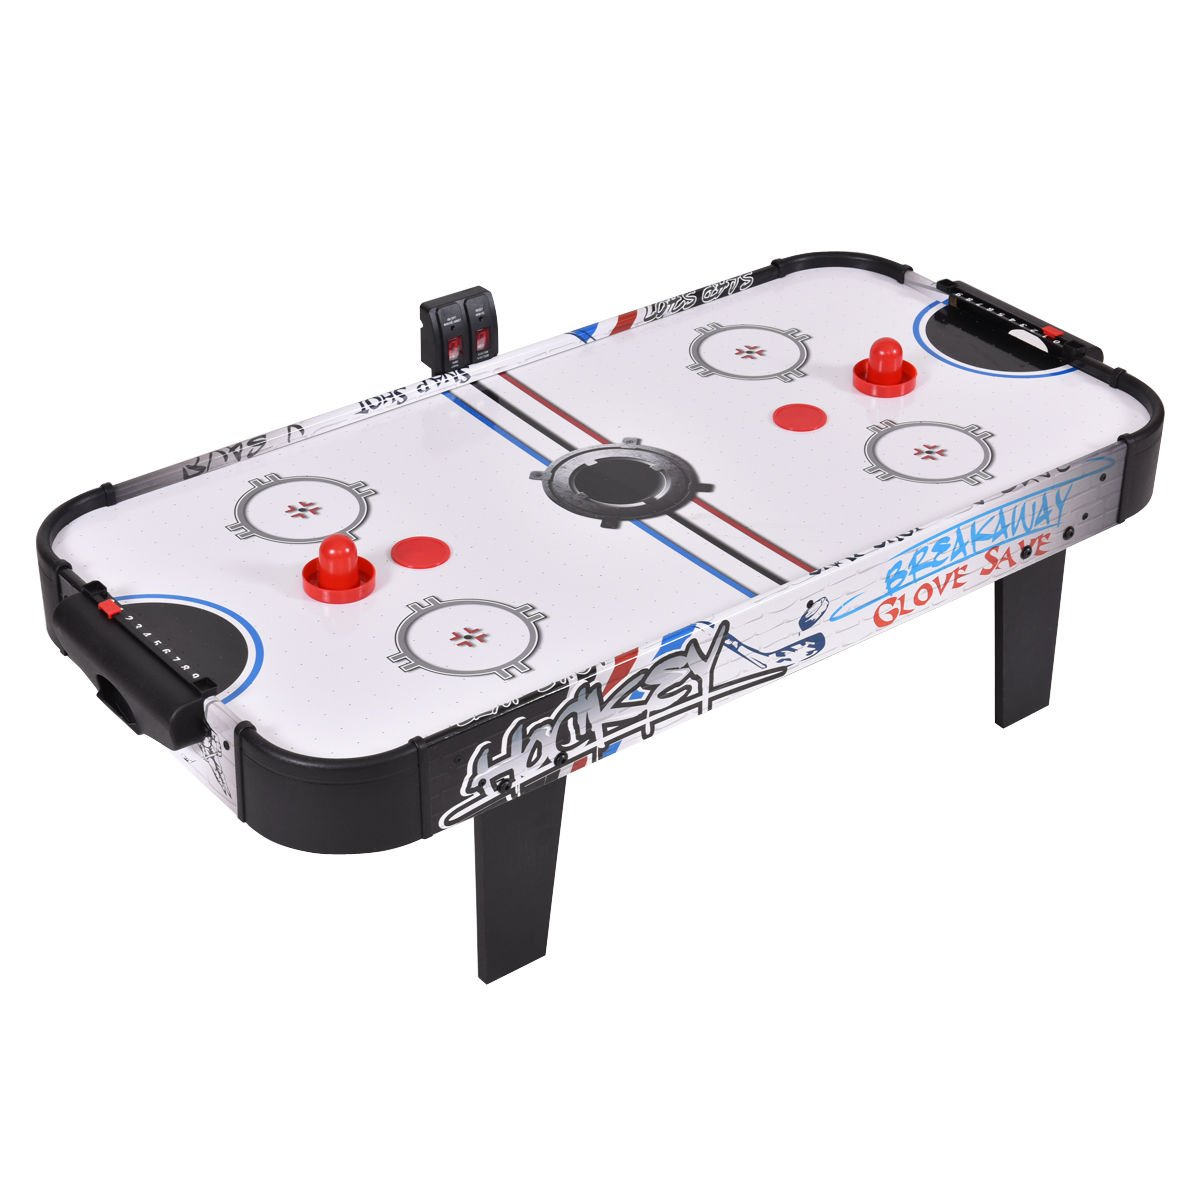 GOPLUS Air Powered Hockey Table, LED Electronic Scoring Indoor Sports Game for Kids (42'') by GOPLUS